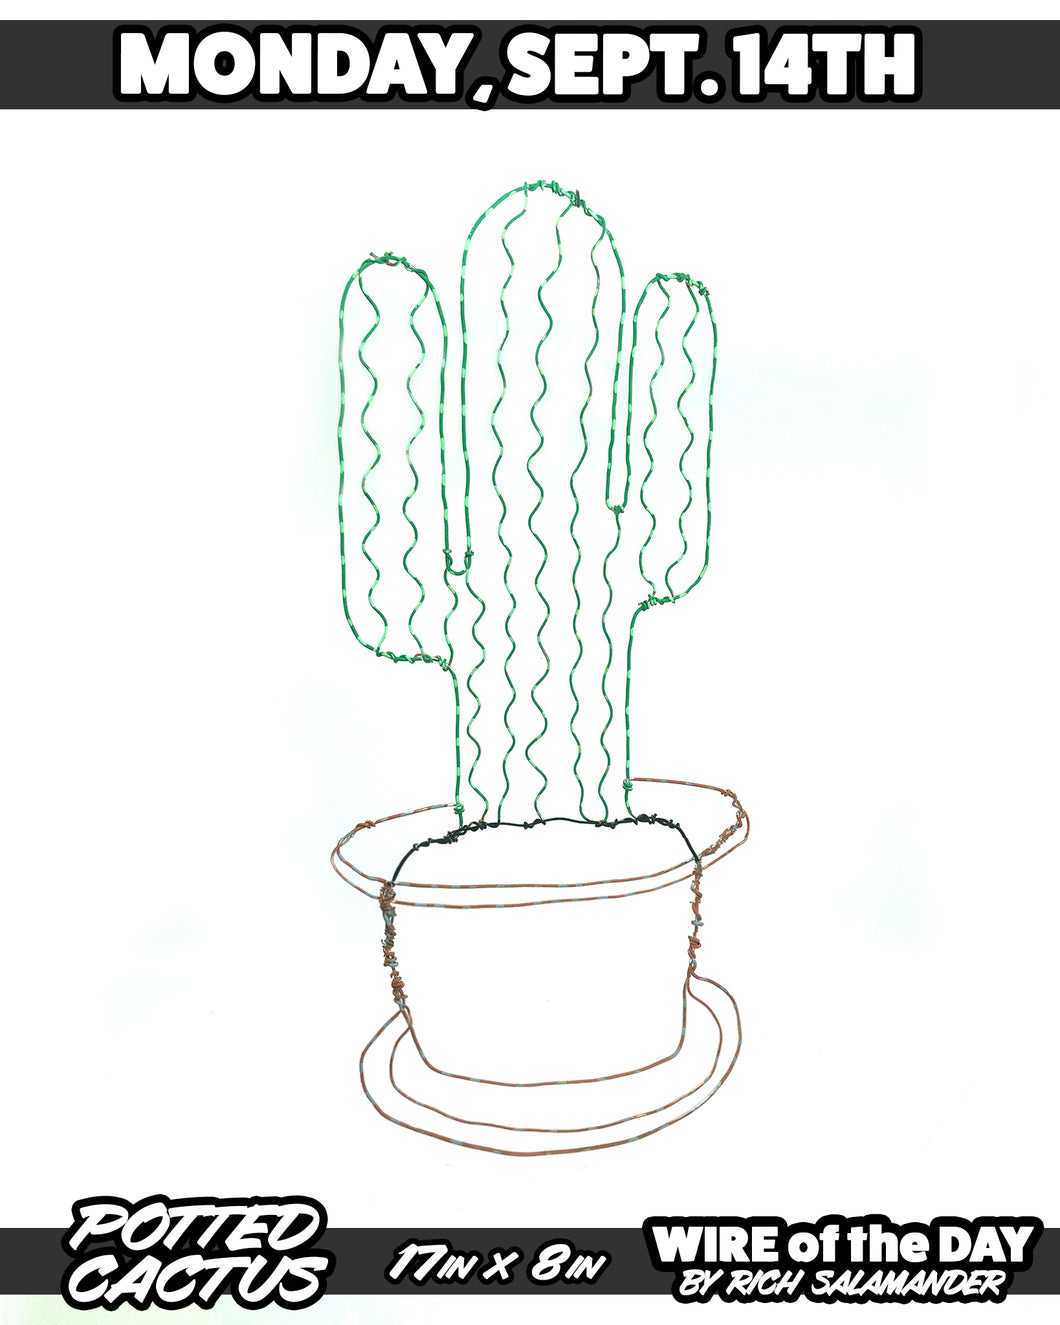 WIRE of the DAY POTTED CACTUS *